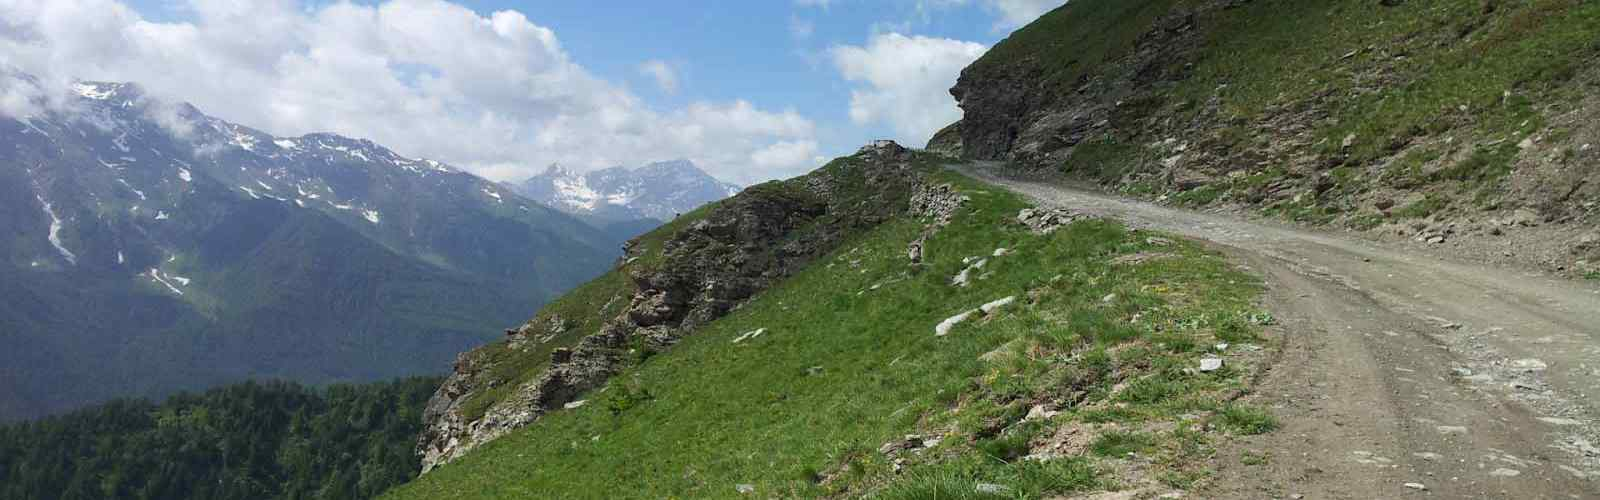 Motorcycle tour on the unpaved road in Susa Valley, Piedmont